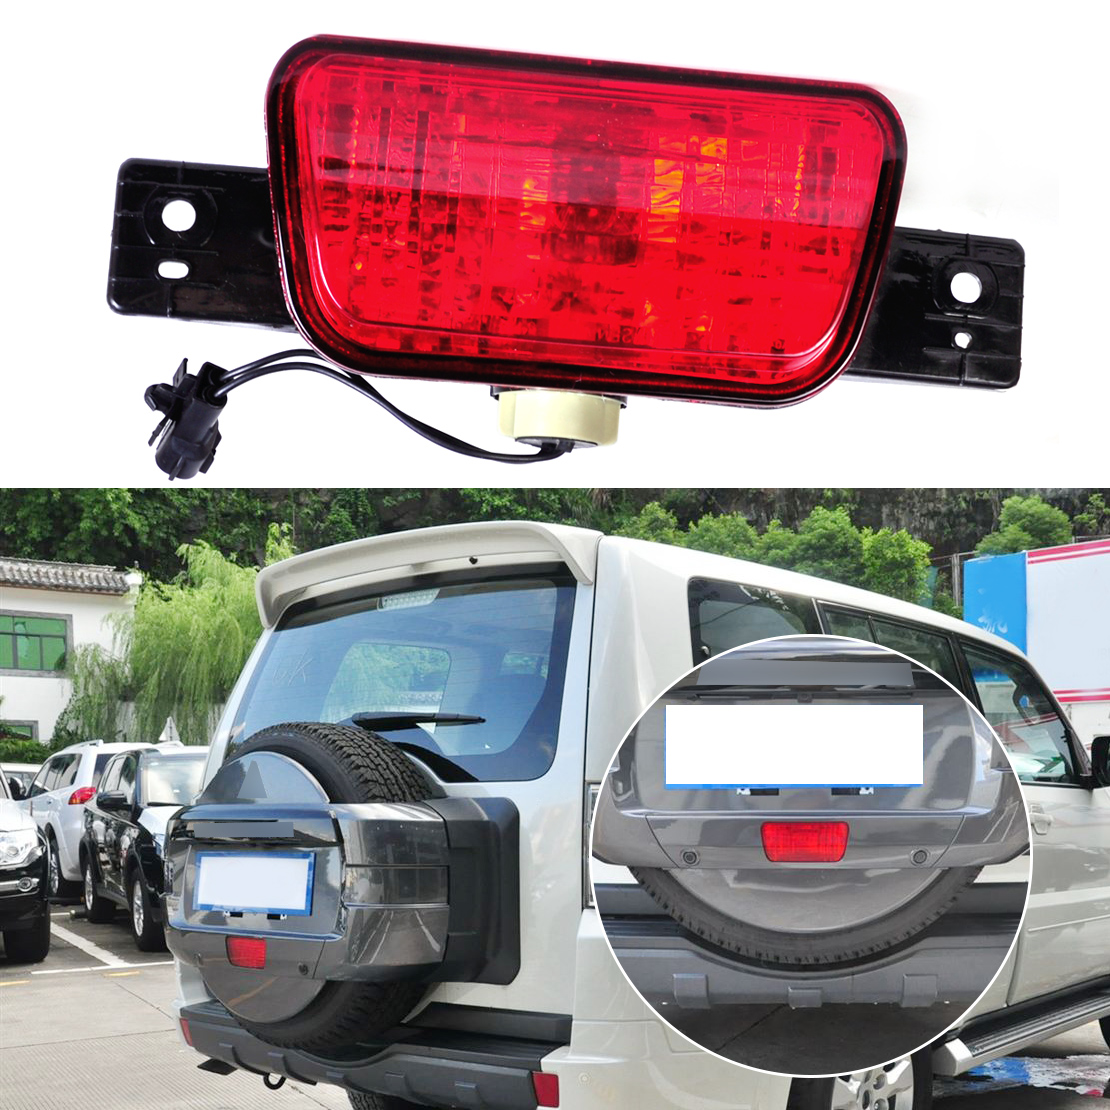 DWCX Rear Spare Tire Lamp Tail Bumper Light Fog Lamp for Mitsubishi Pajero Shogun 2007 2008 2009 2010 2011 2012 2013 2014 2015 car rear trunk security shield shade cargo cover for nissan qashqai 2008 2009 2010 2011 2012 2013 black beige